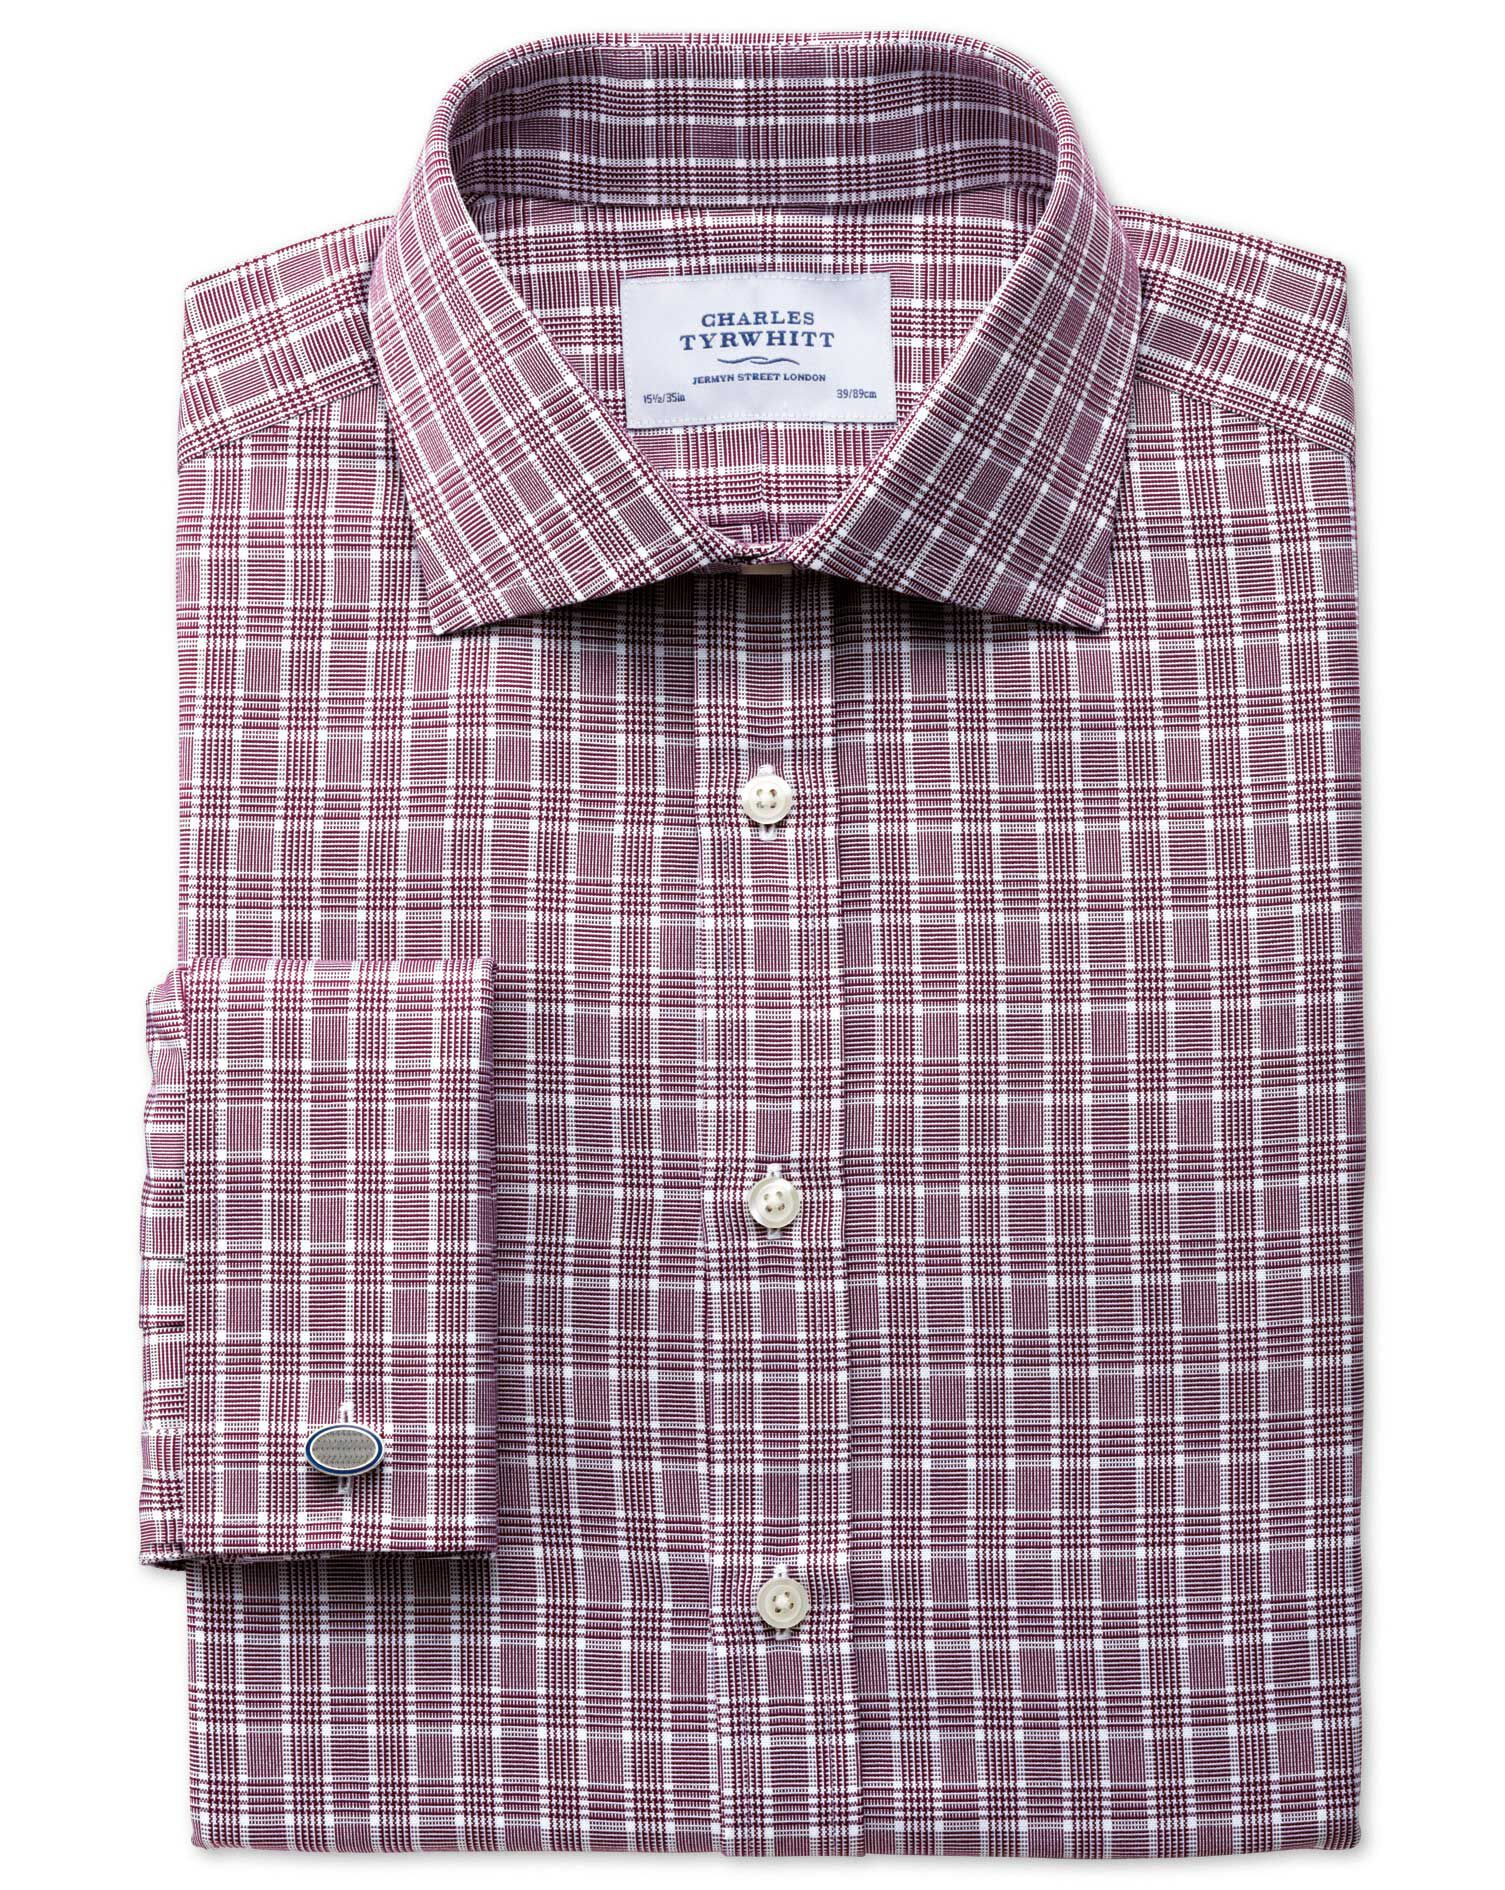 Classic Fit Prince Of Wales Berry Cotton Formal Shirt Double Cuff Size 15/35 by Charles Tyrwhitt